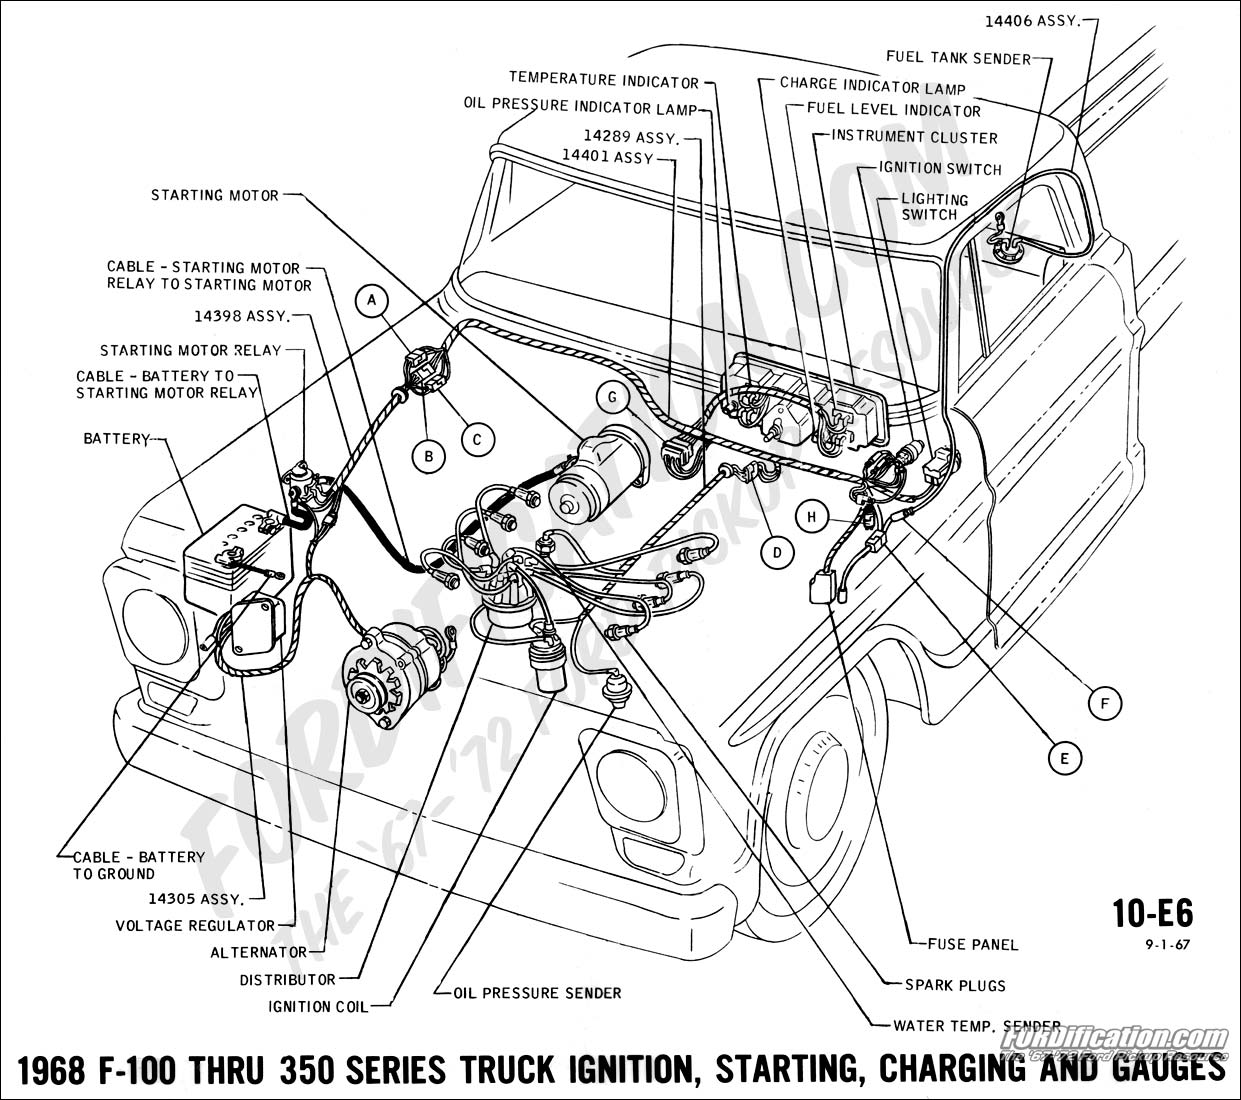 1994 Corvette Wiring Diagram Corvette Wiring Diagrams For Diy With Regard To 1970 Chevy Truck Parts Diagram besides Craftsman Lawn Mower Model 917 Wiring Diagram Project Ideas Garden Tractor Parts Stunning Design Deck   List For 917289720 Craftsman   Wiring Diagram besides Forum posts moreover 1024794 1979 F250 Ignition Switch as well 1970 Chevelle Wiring Diagram. on 1967 ford starter solenoid wiring diagram